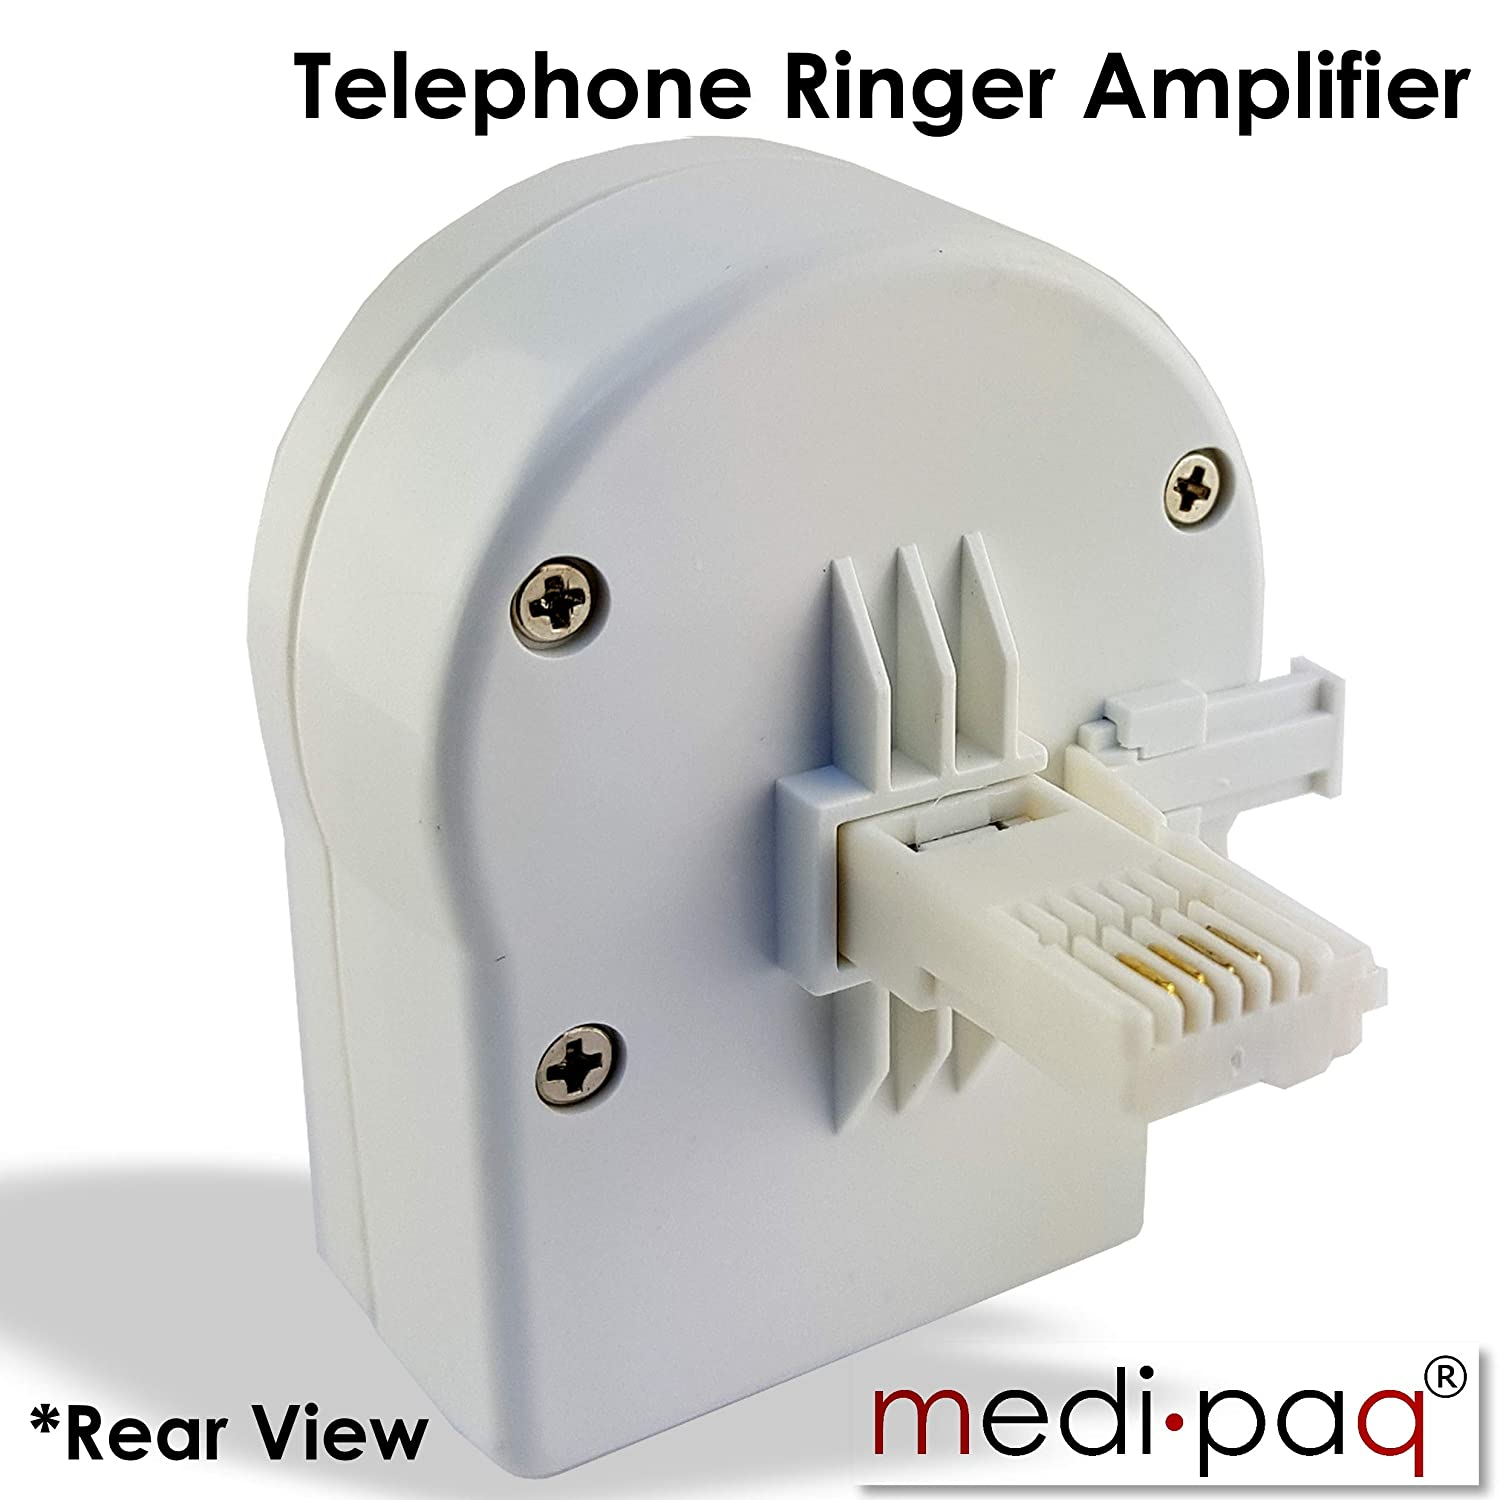 Medipaq Telephone Ringer Amplifier Dual Purpose Hear It Ring Circuit Louder See Flashing Never Miss A Call At Home Office Workshop Etc